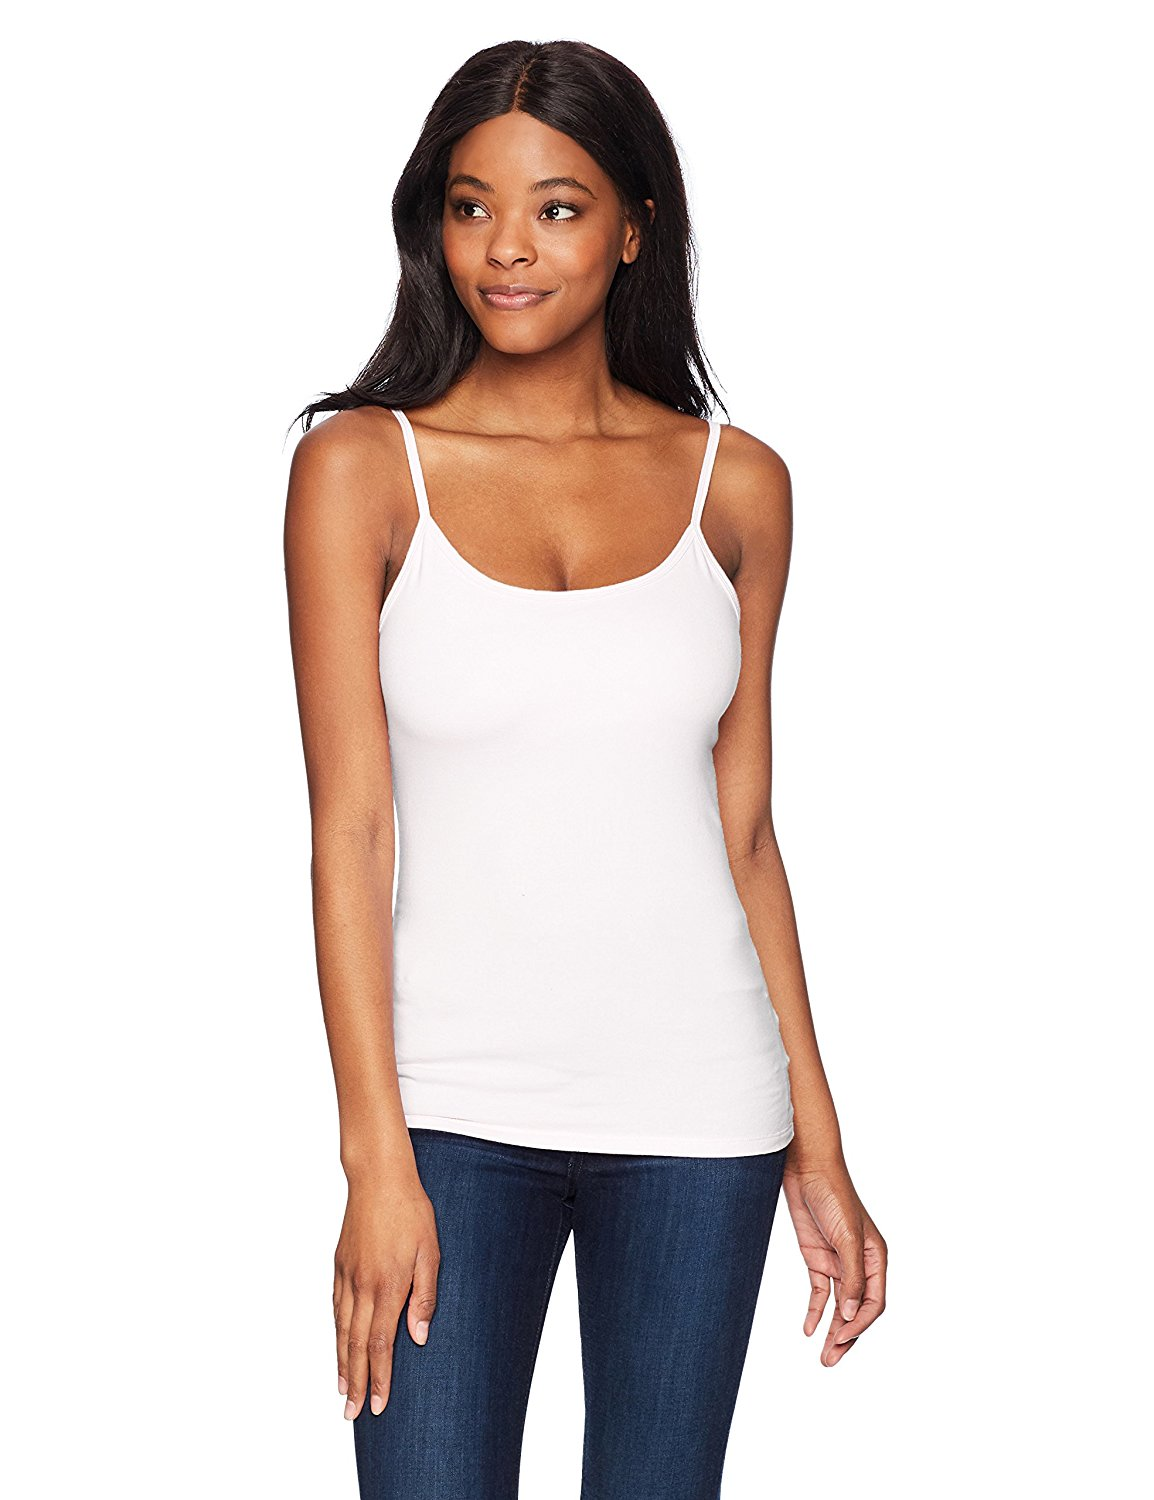 b86d7e9eac917c Get Quotations · Hanes Women s Stretch Cotton Cami with Built-in Shelf Bra